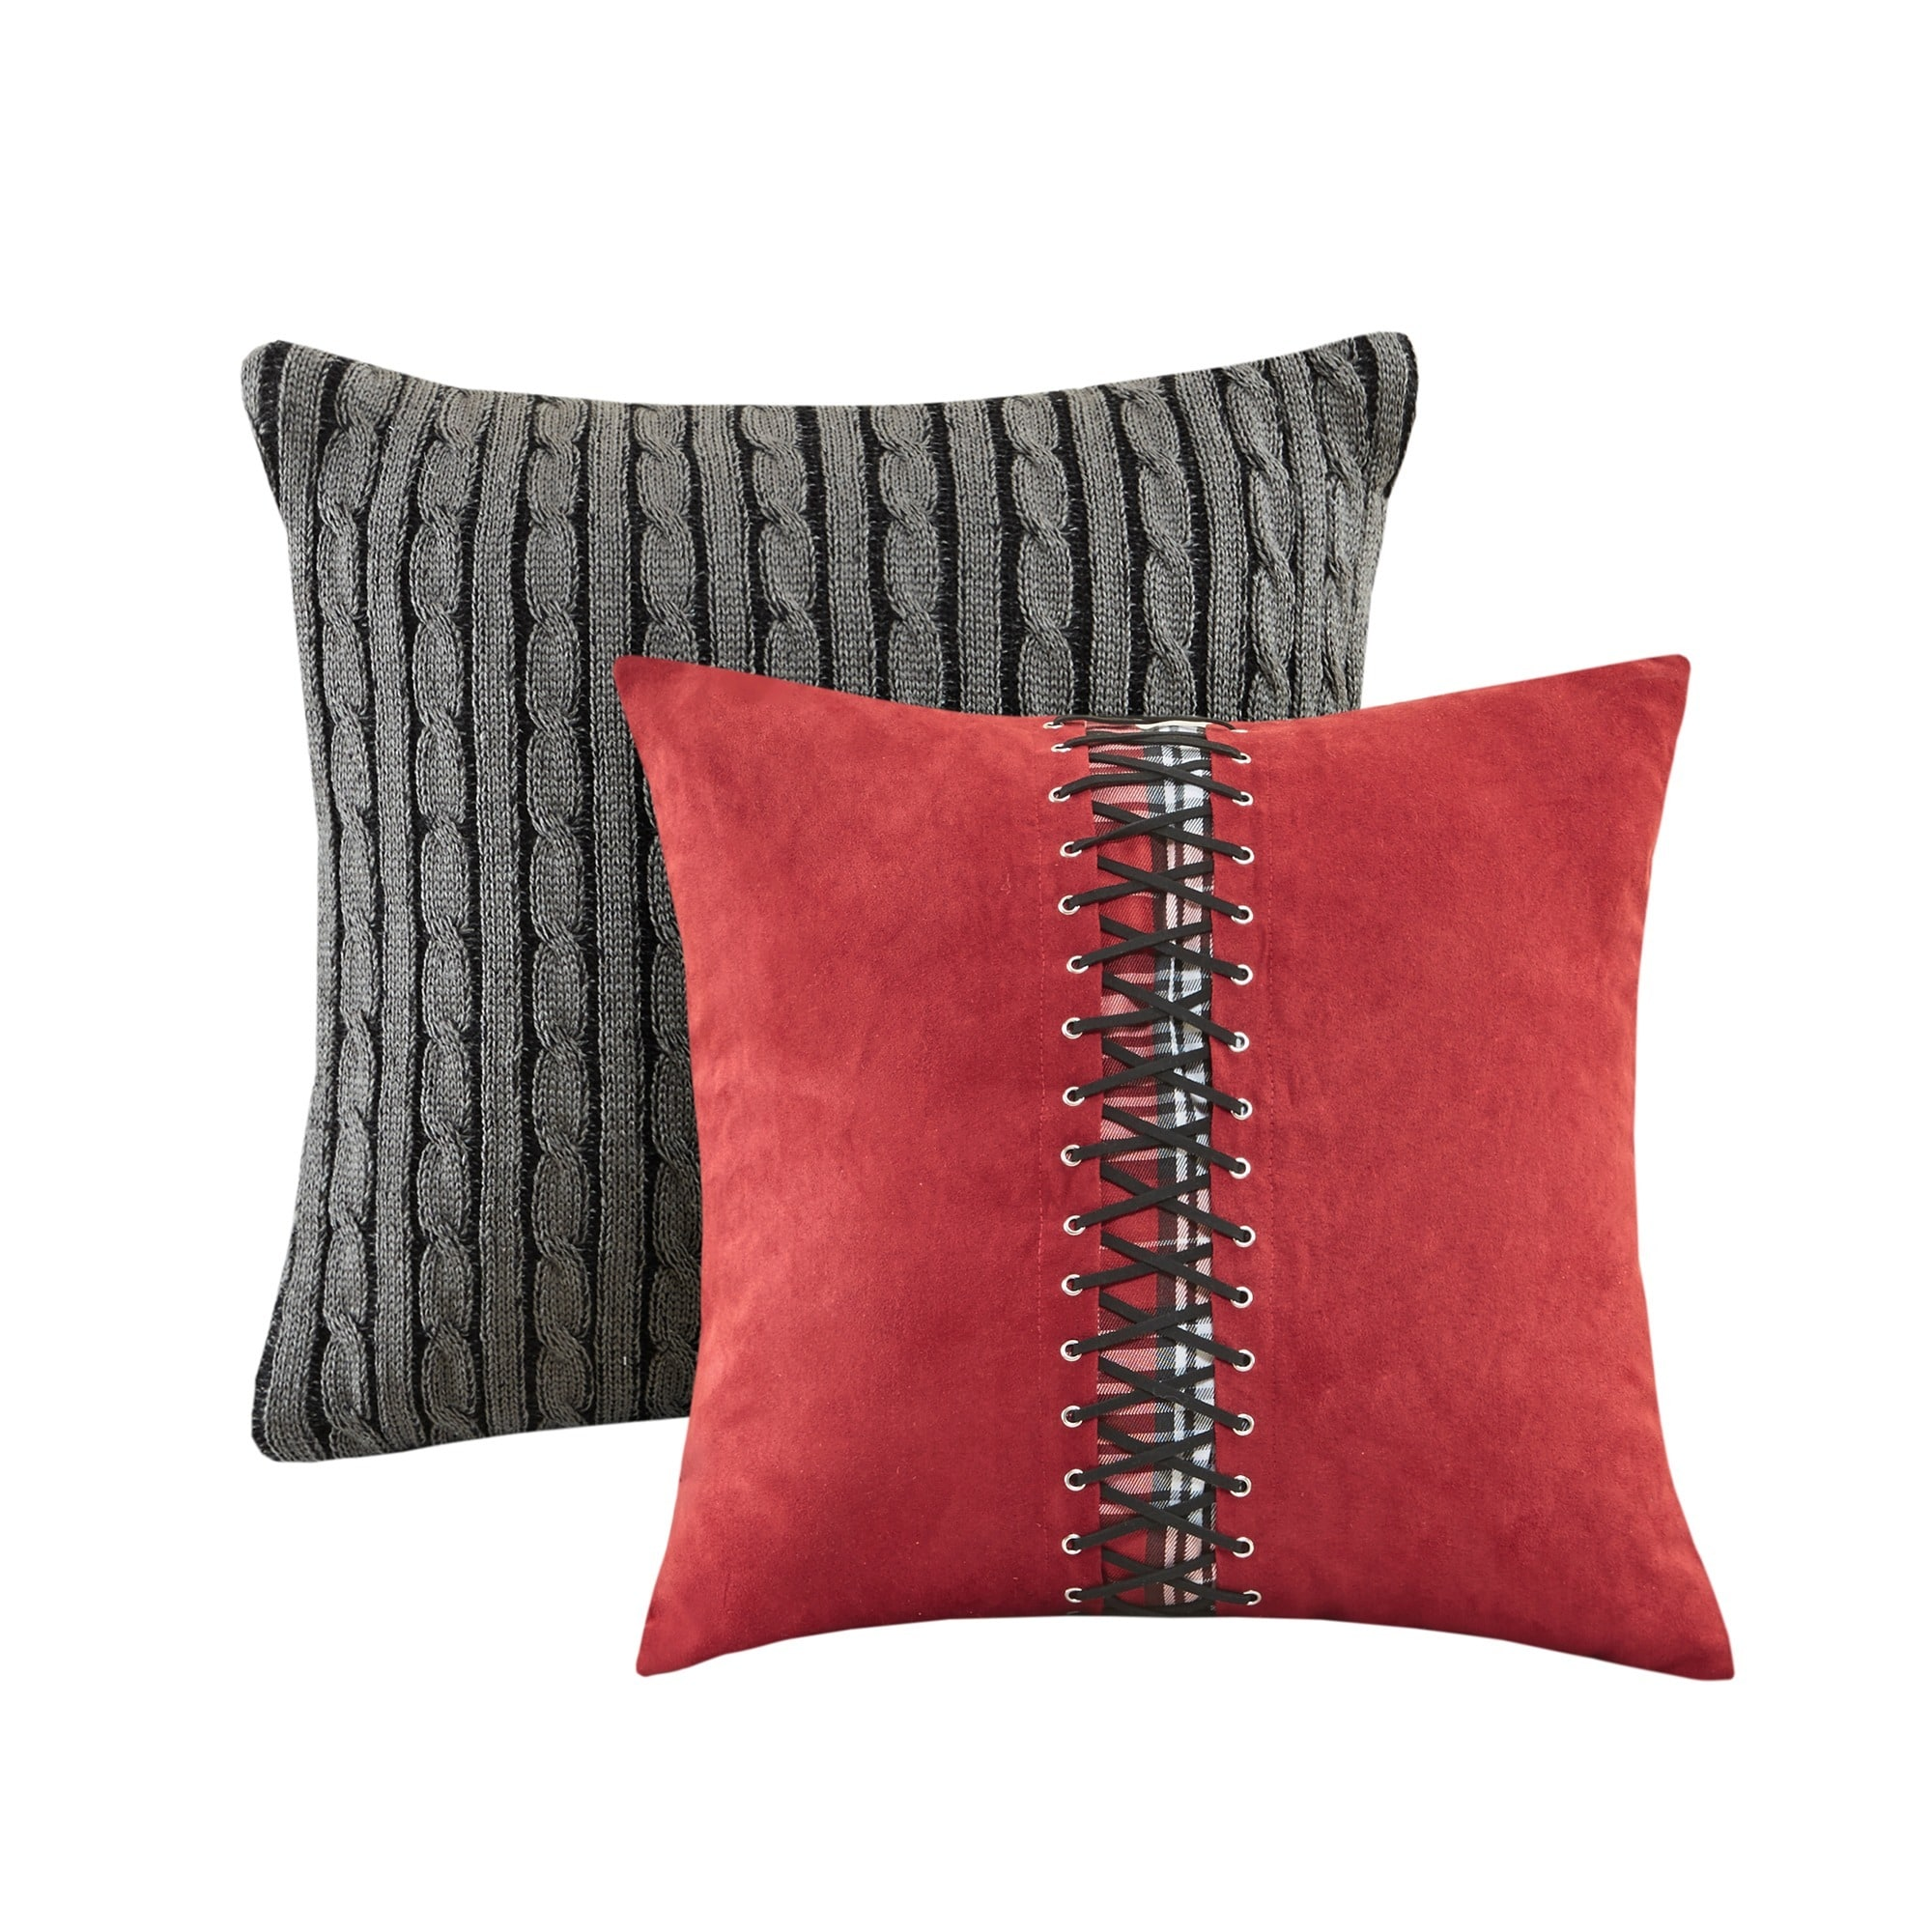 woolrich williamsport decorative pillows  free shipping on orders over  overstockcom  . woolrich williamsport decorative pillows  free shipping on orders